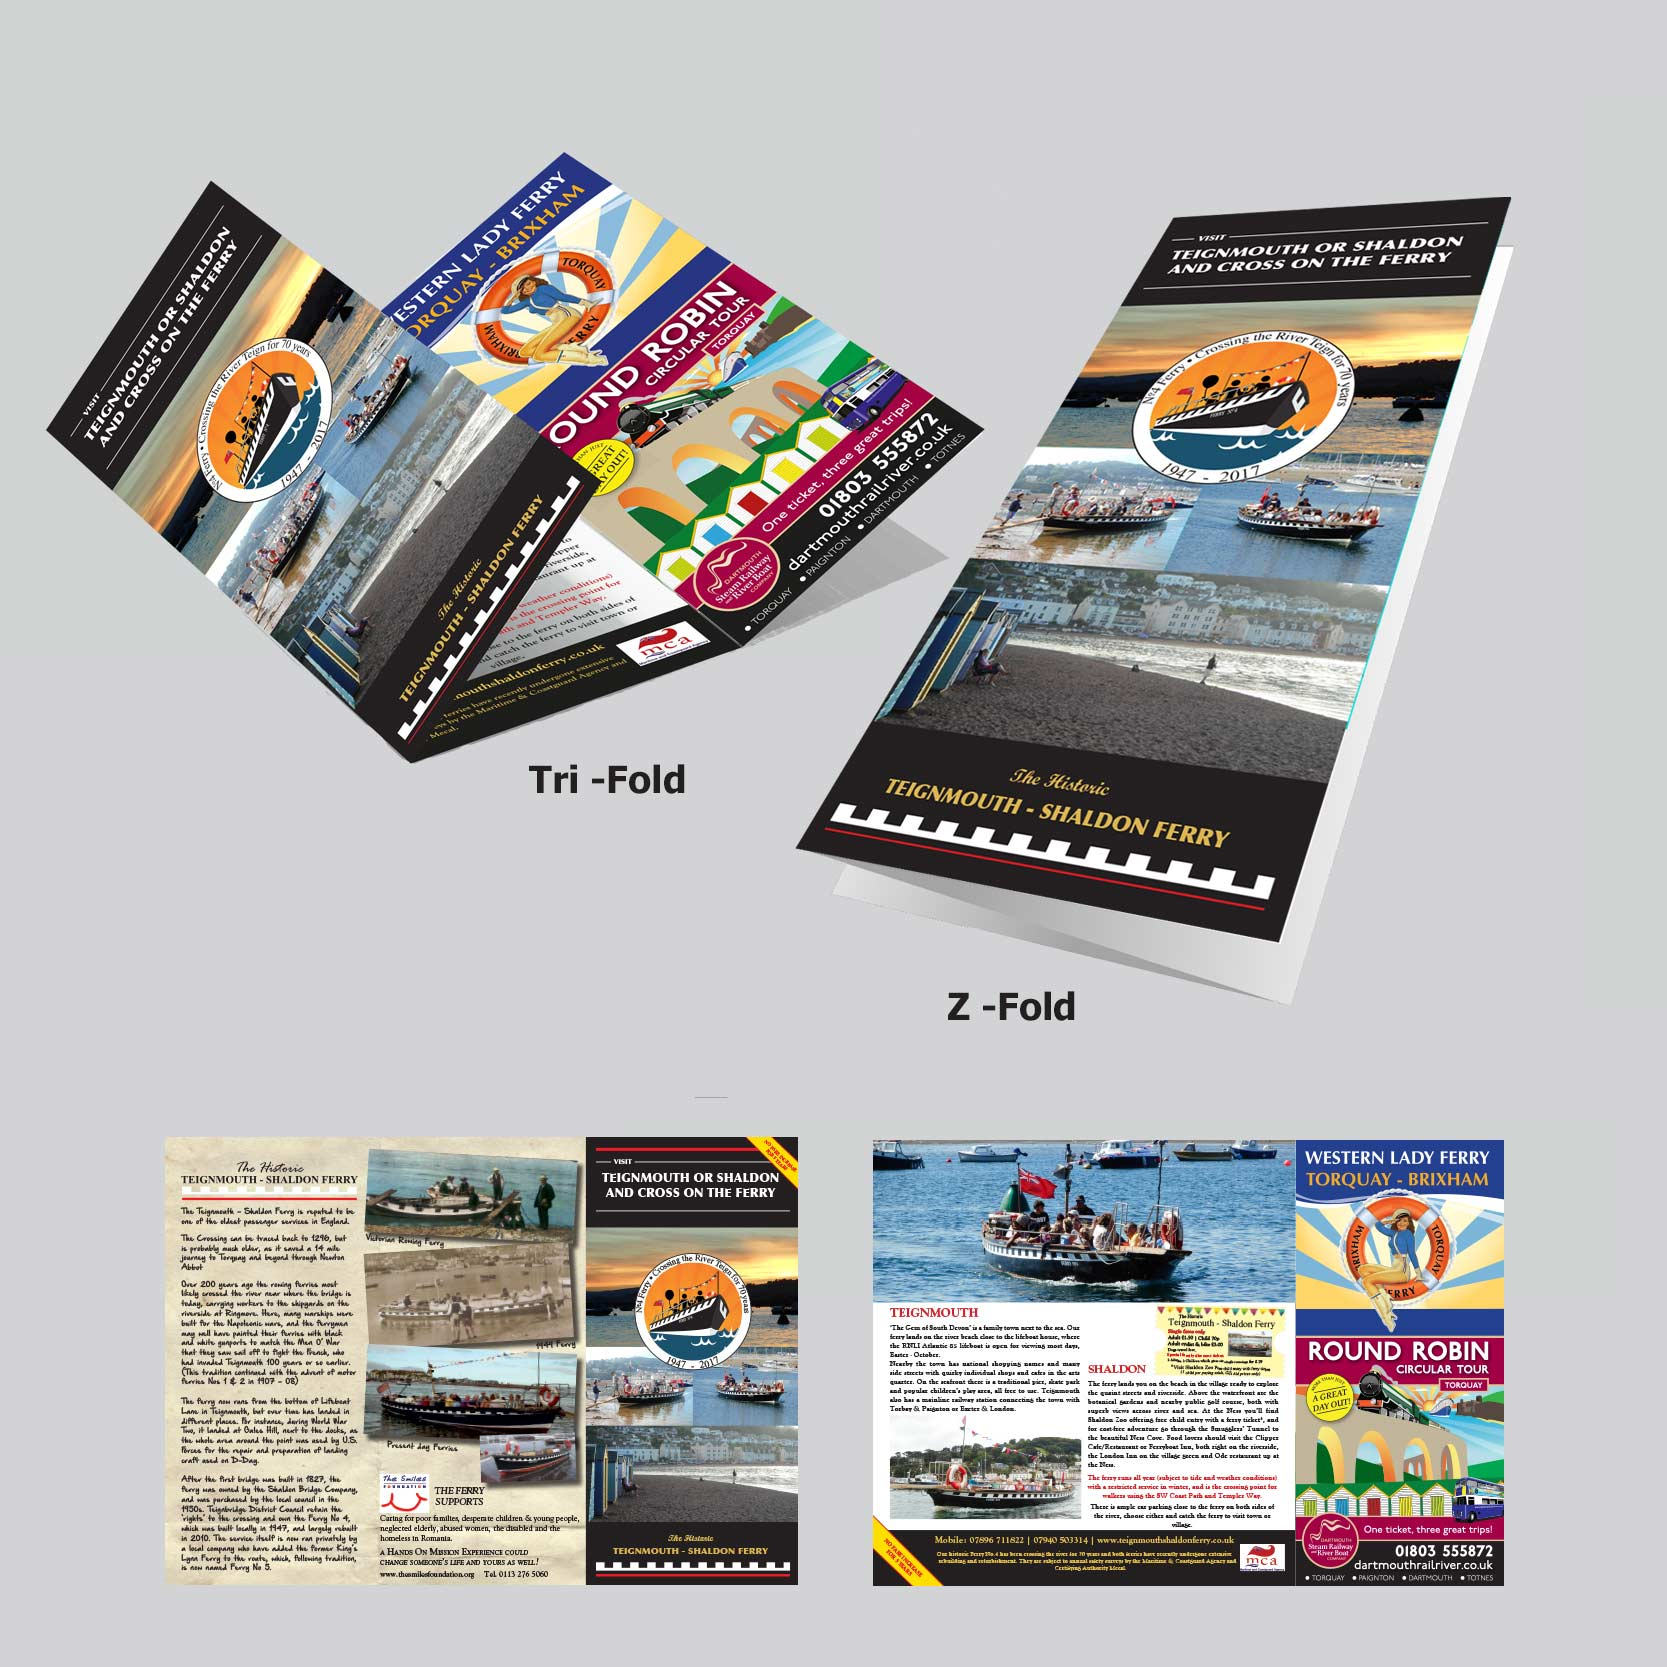 Printing on tri fold poster board